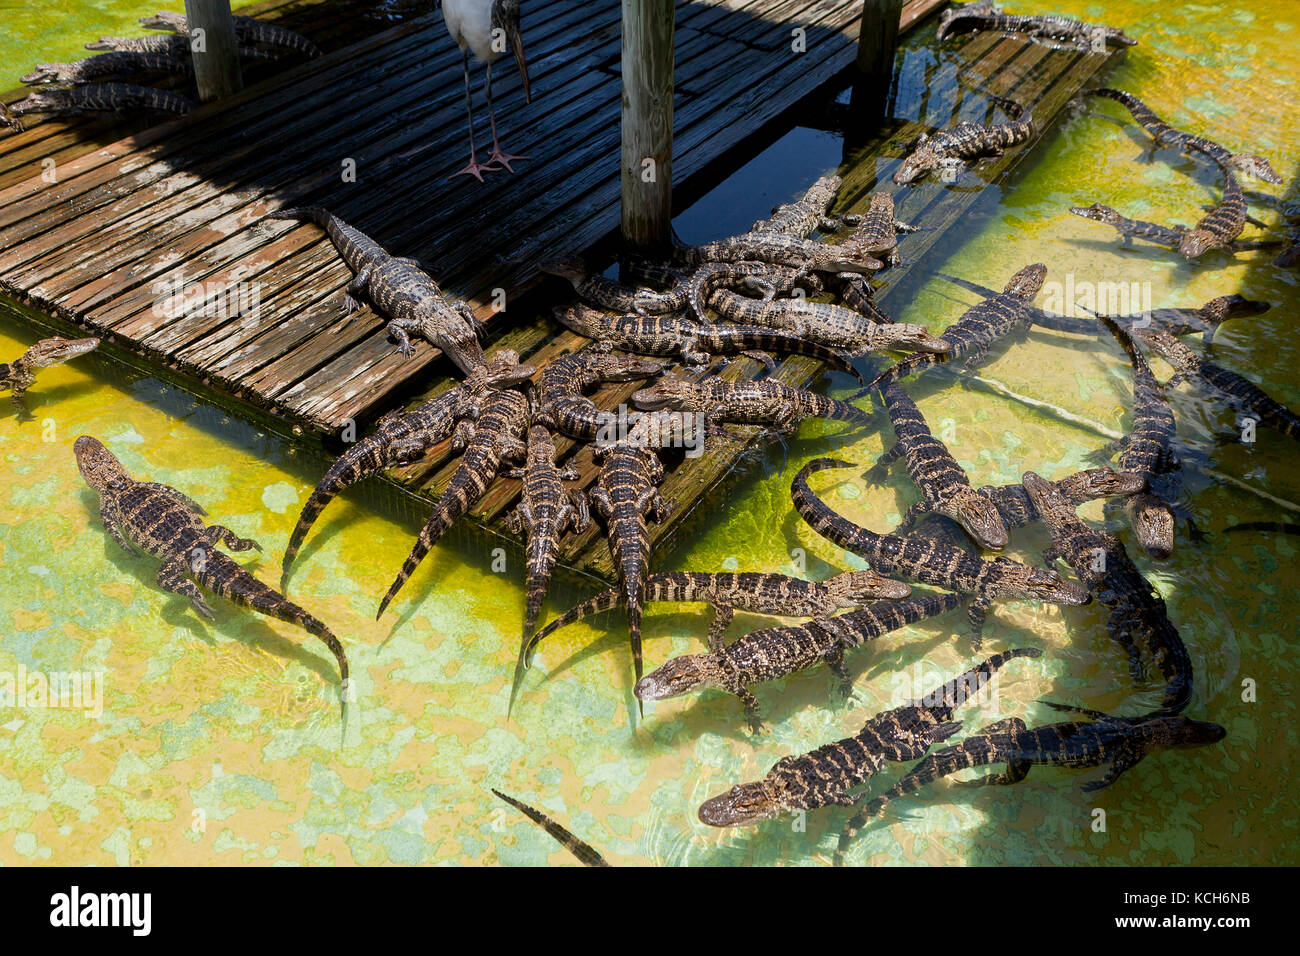 Juvenile American alligators (Alligator mississippiensis) basking in sun at Gatorland - Orlando, Florida USA - Stock Image